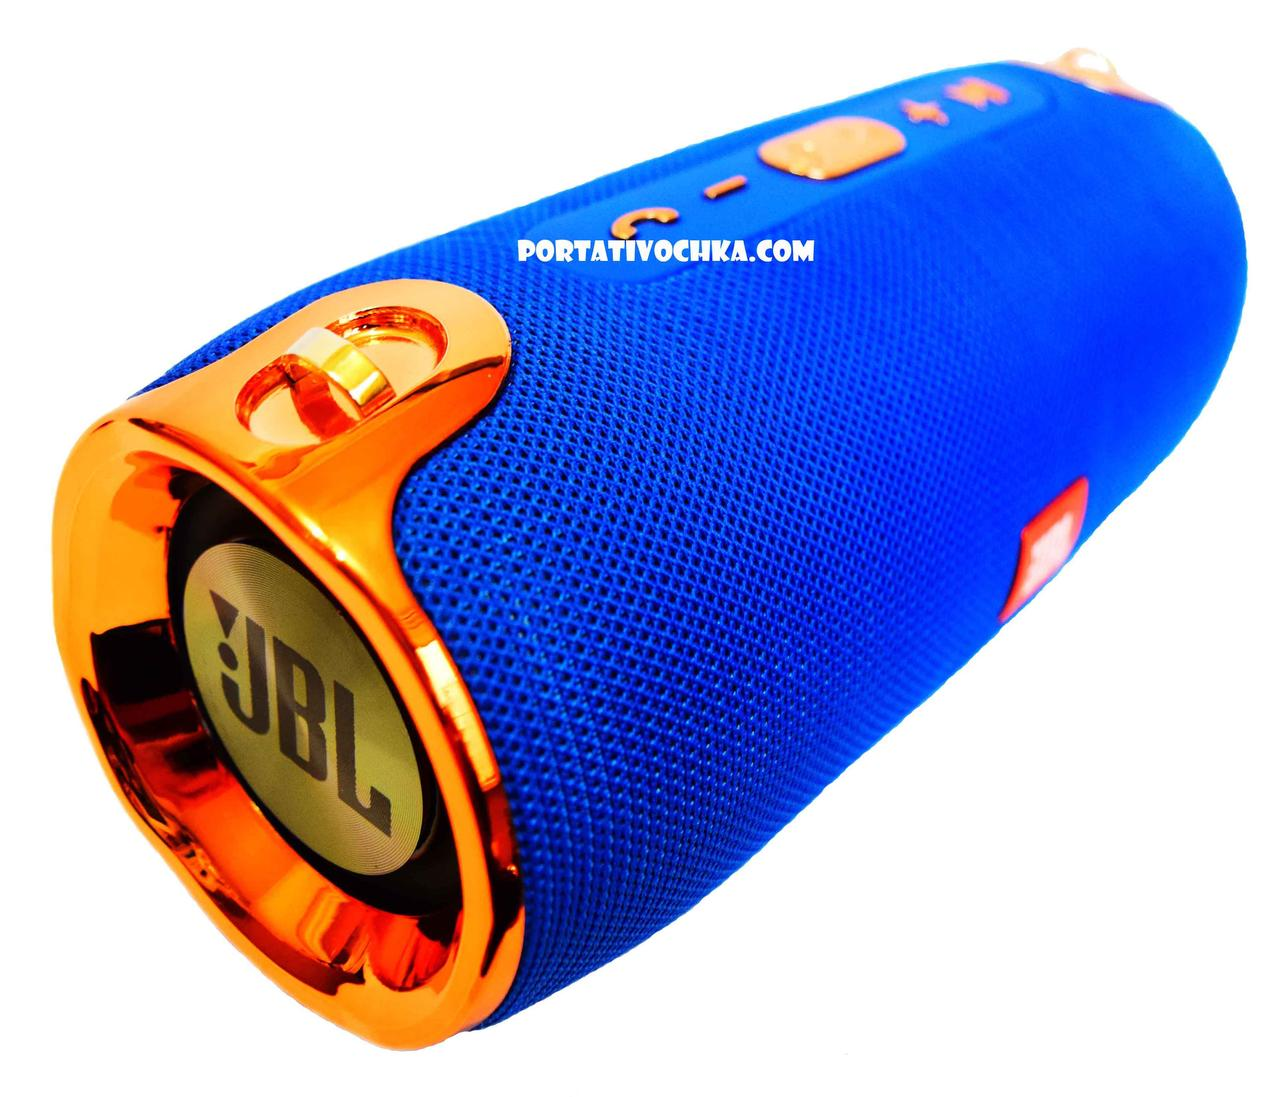 JBL Xtreme BASS PRO Limited Edition